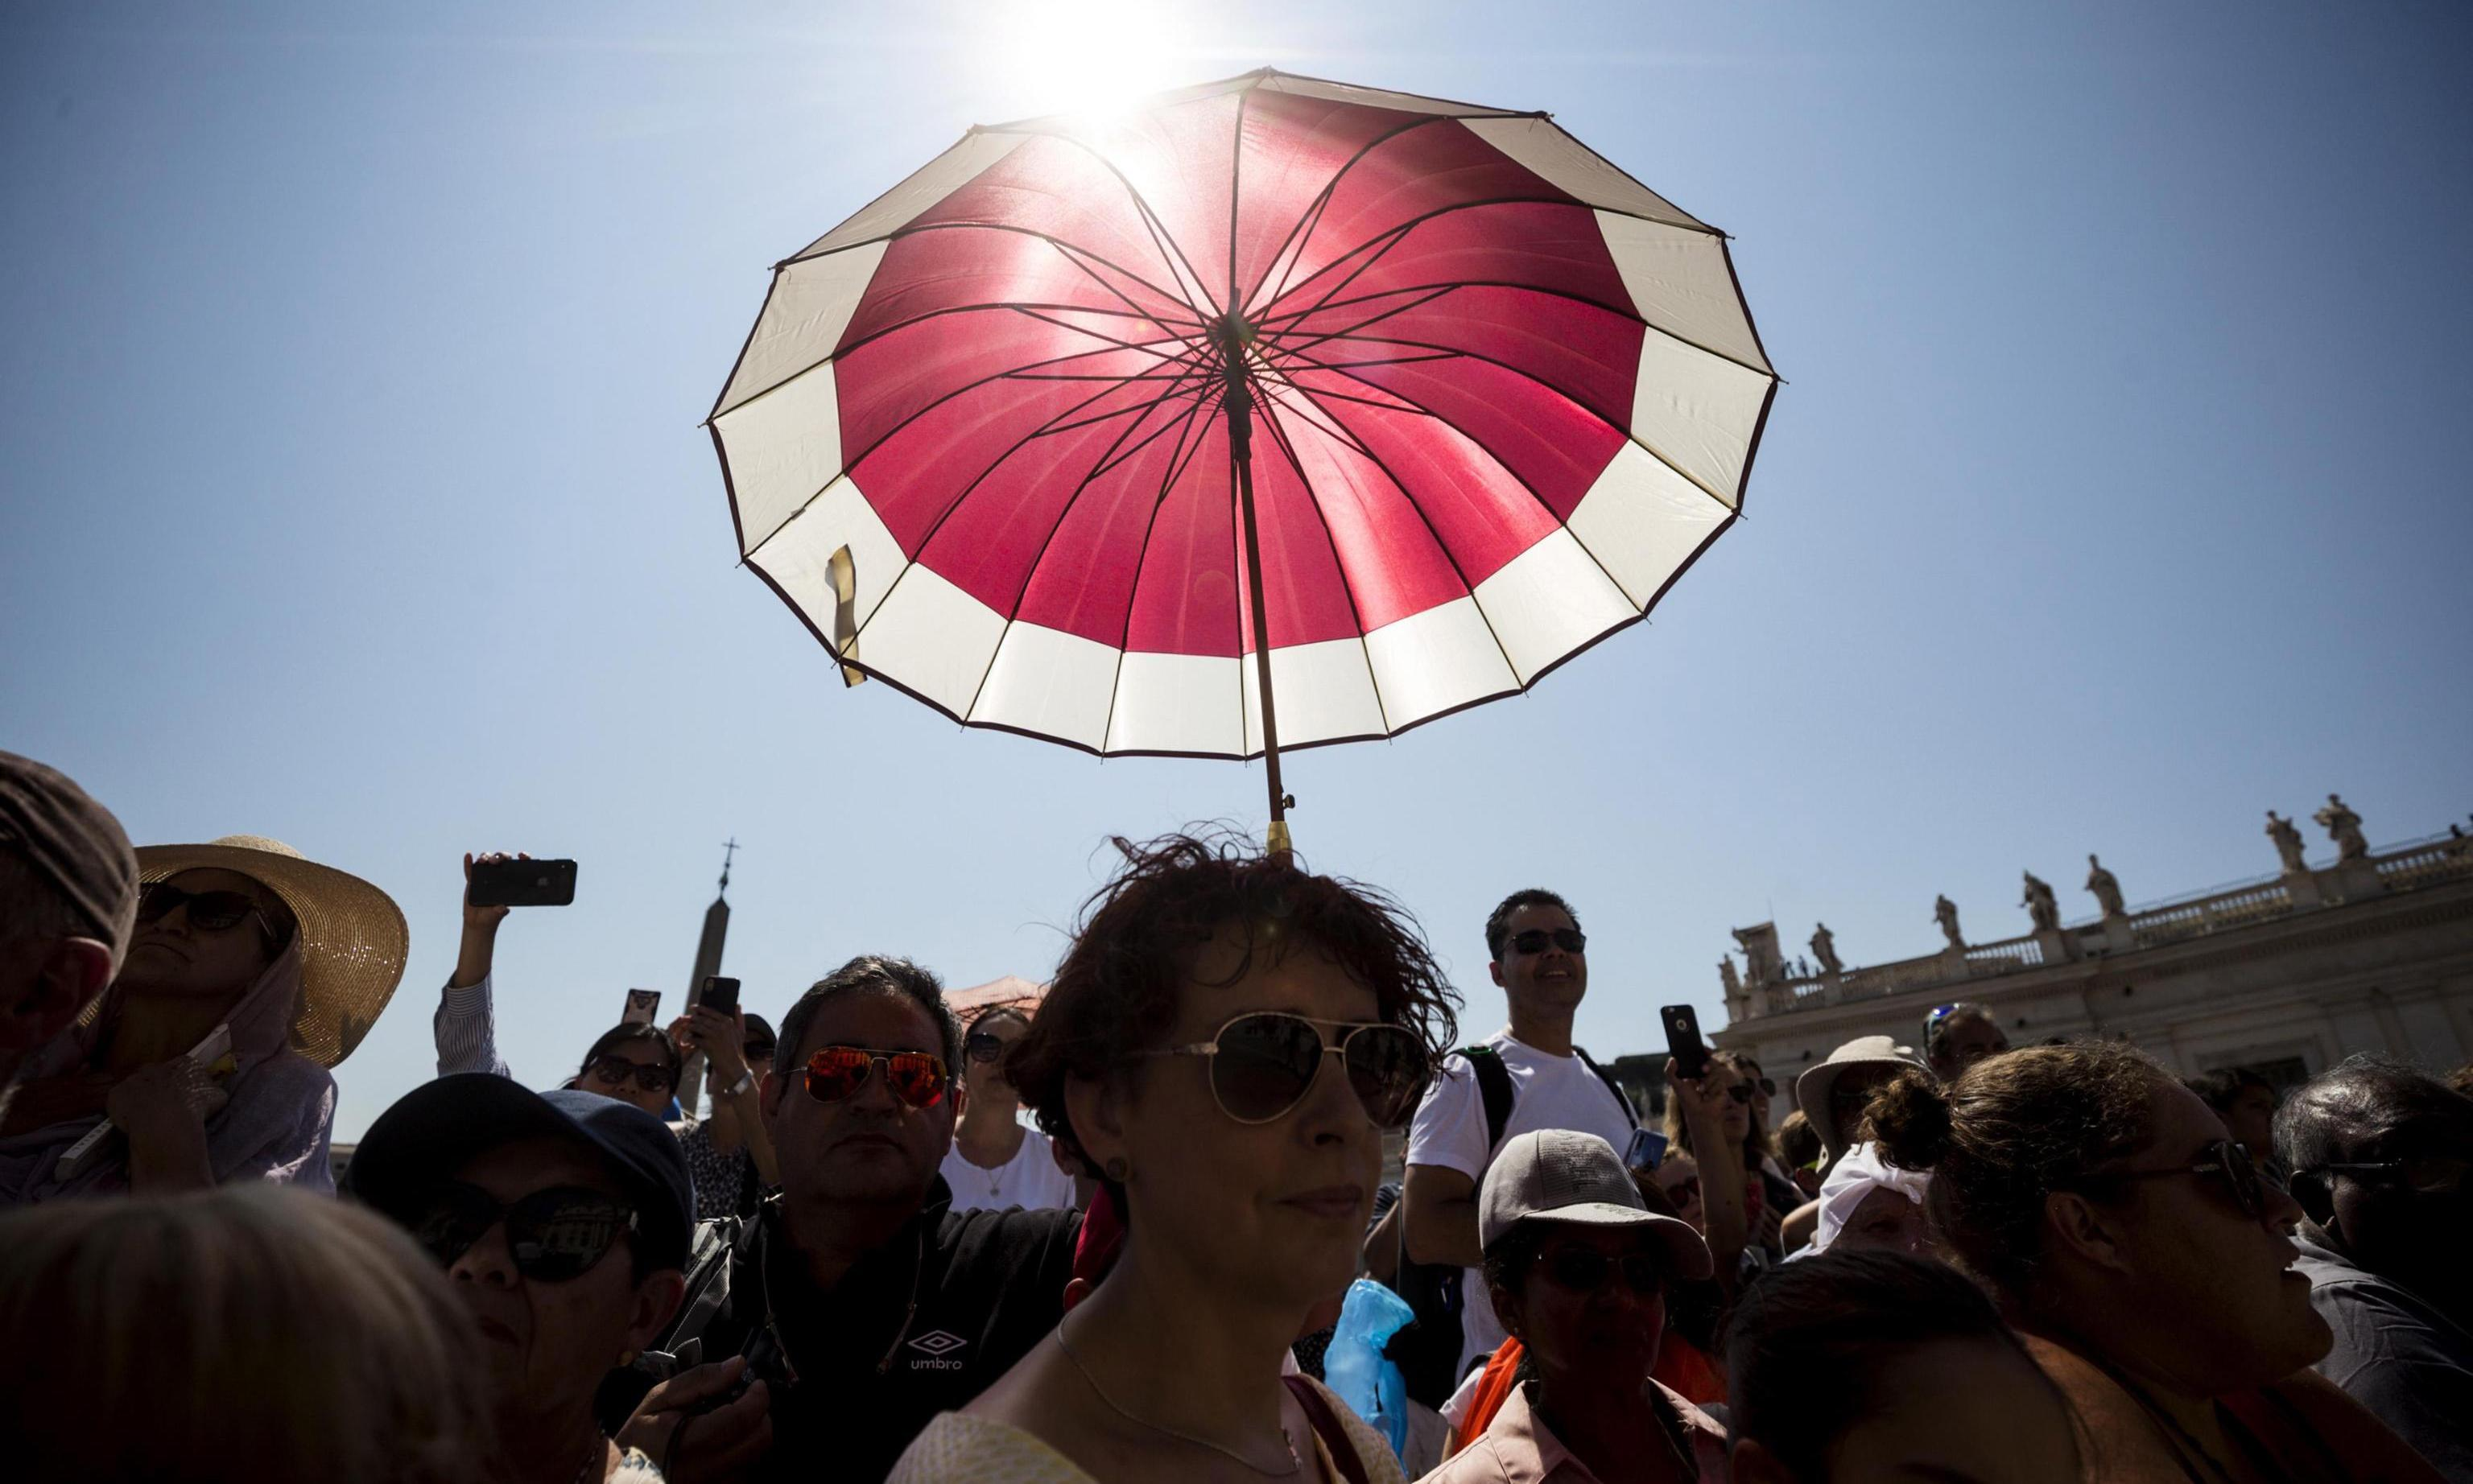 Europe heatwave: cities take steps to limit effects of record temperatures